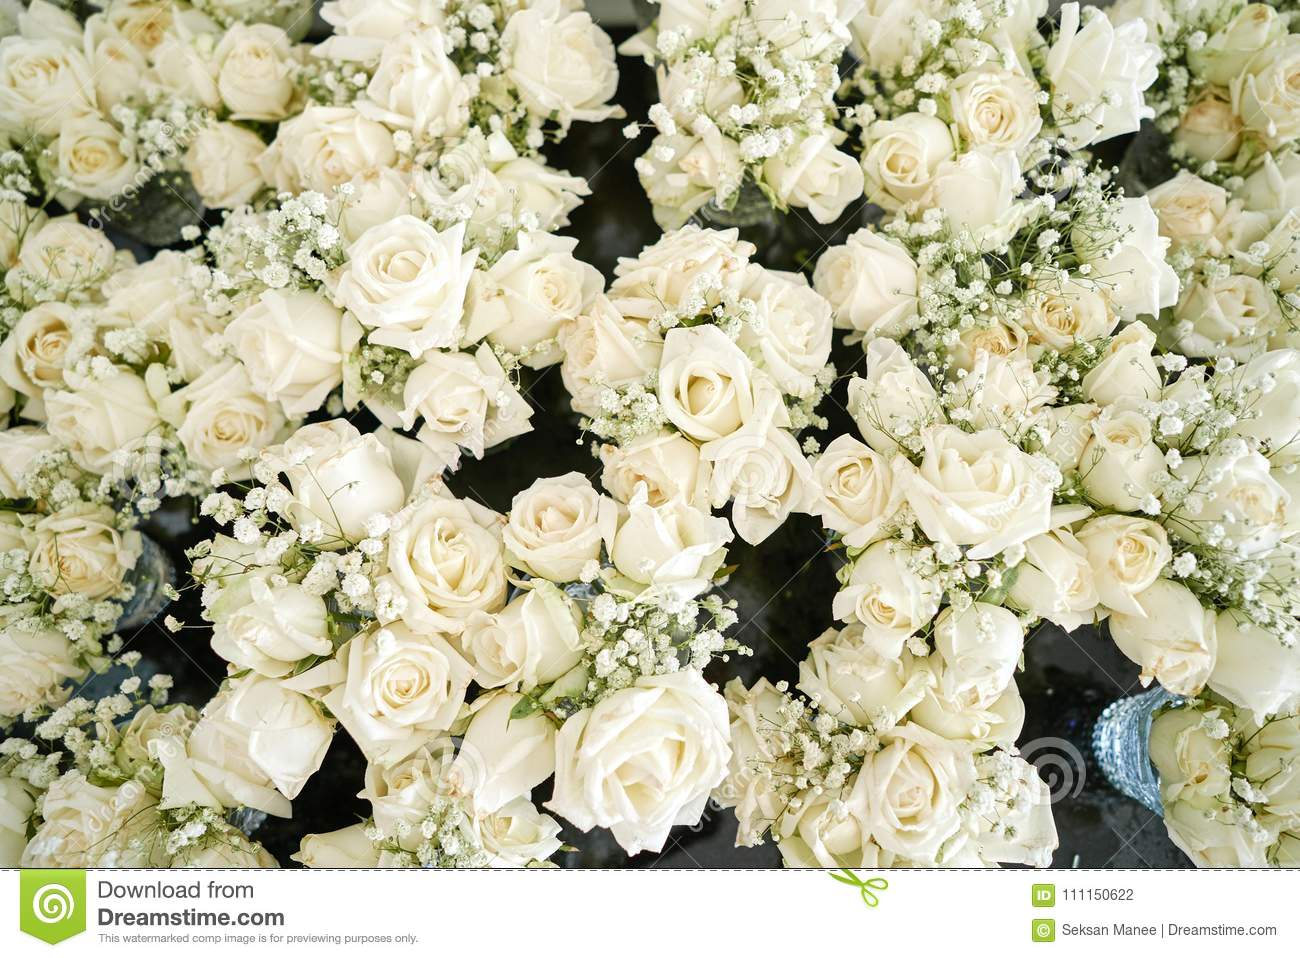 A Bunch Of White And Cream Roses The Babys Breath Gypsophila